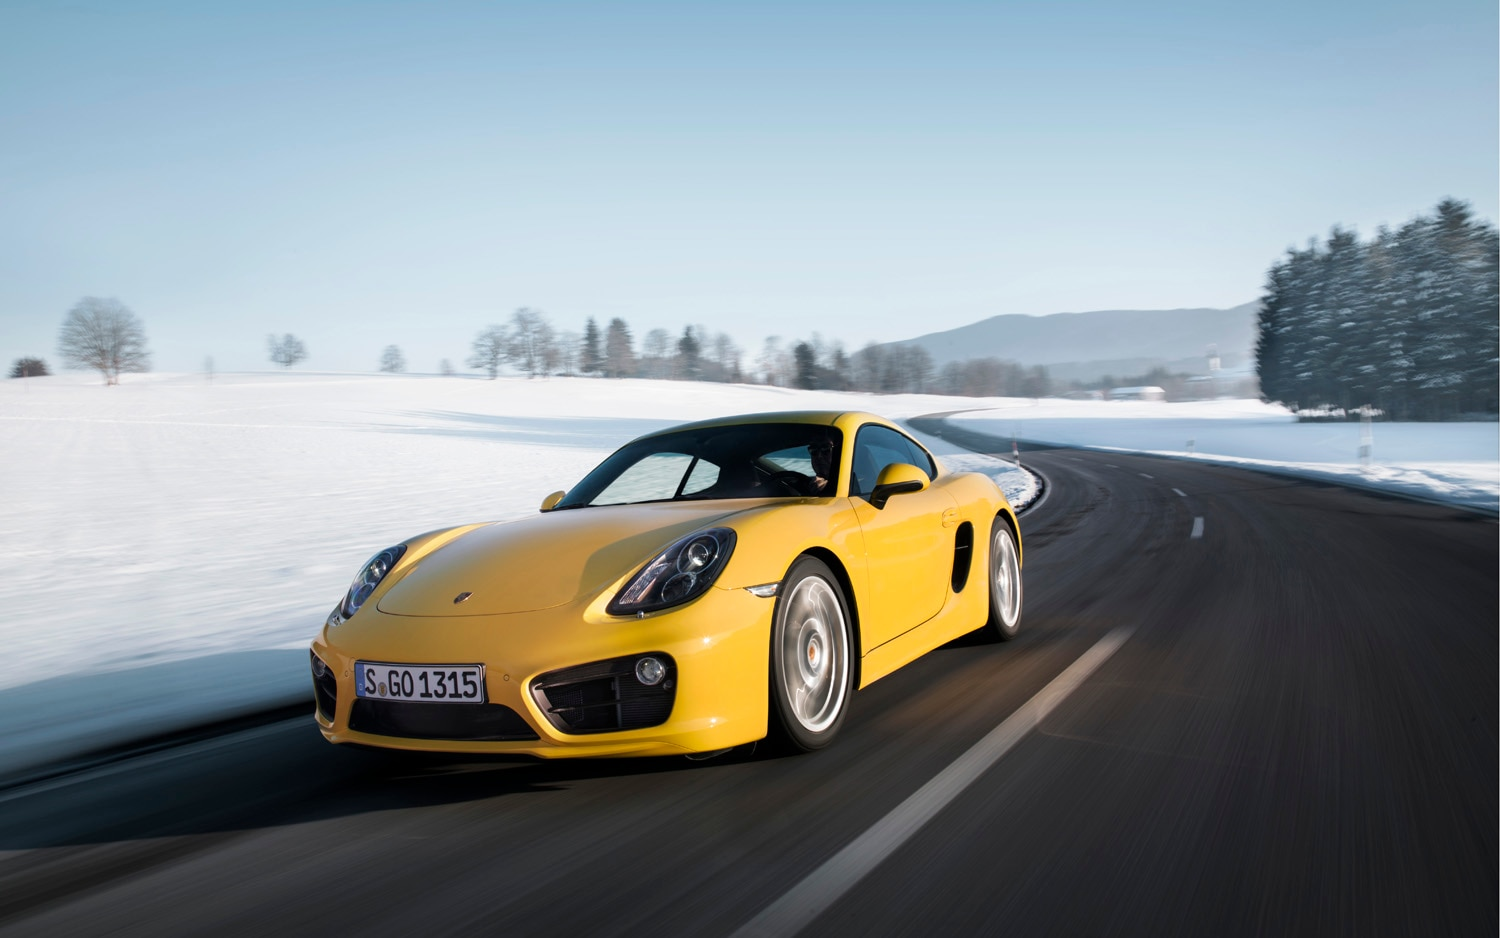 2014 Porsche Cayman S Front Left View 41